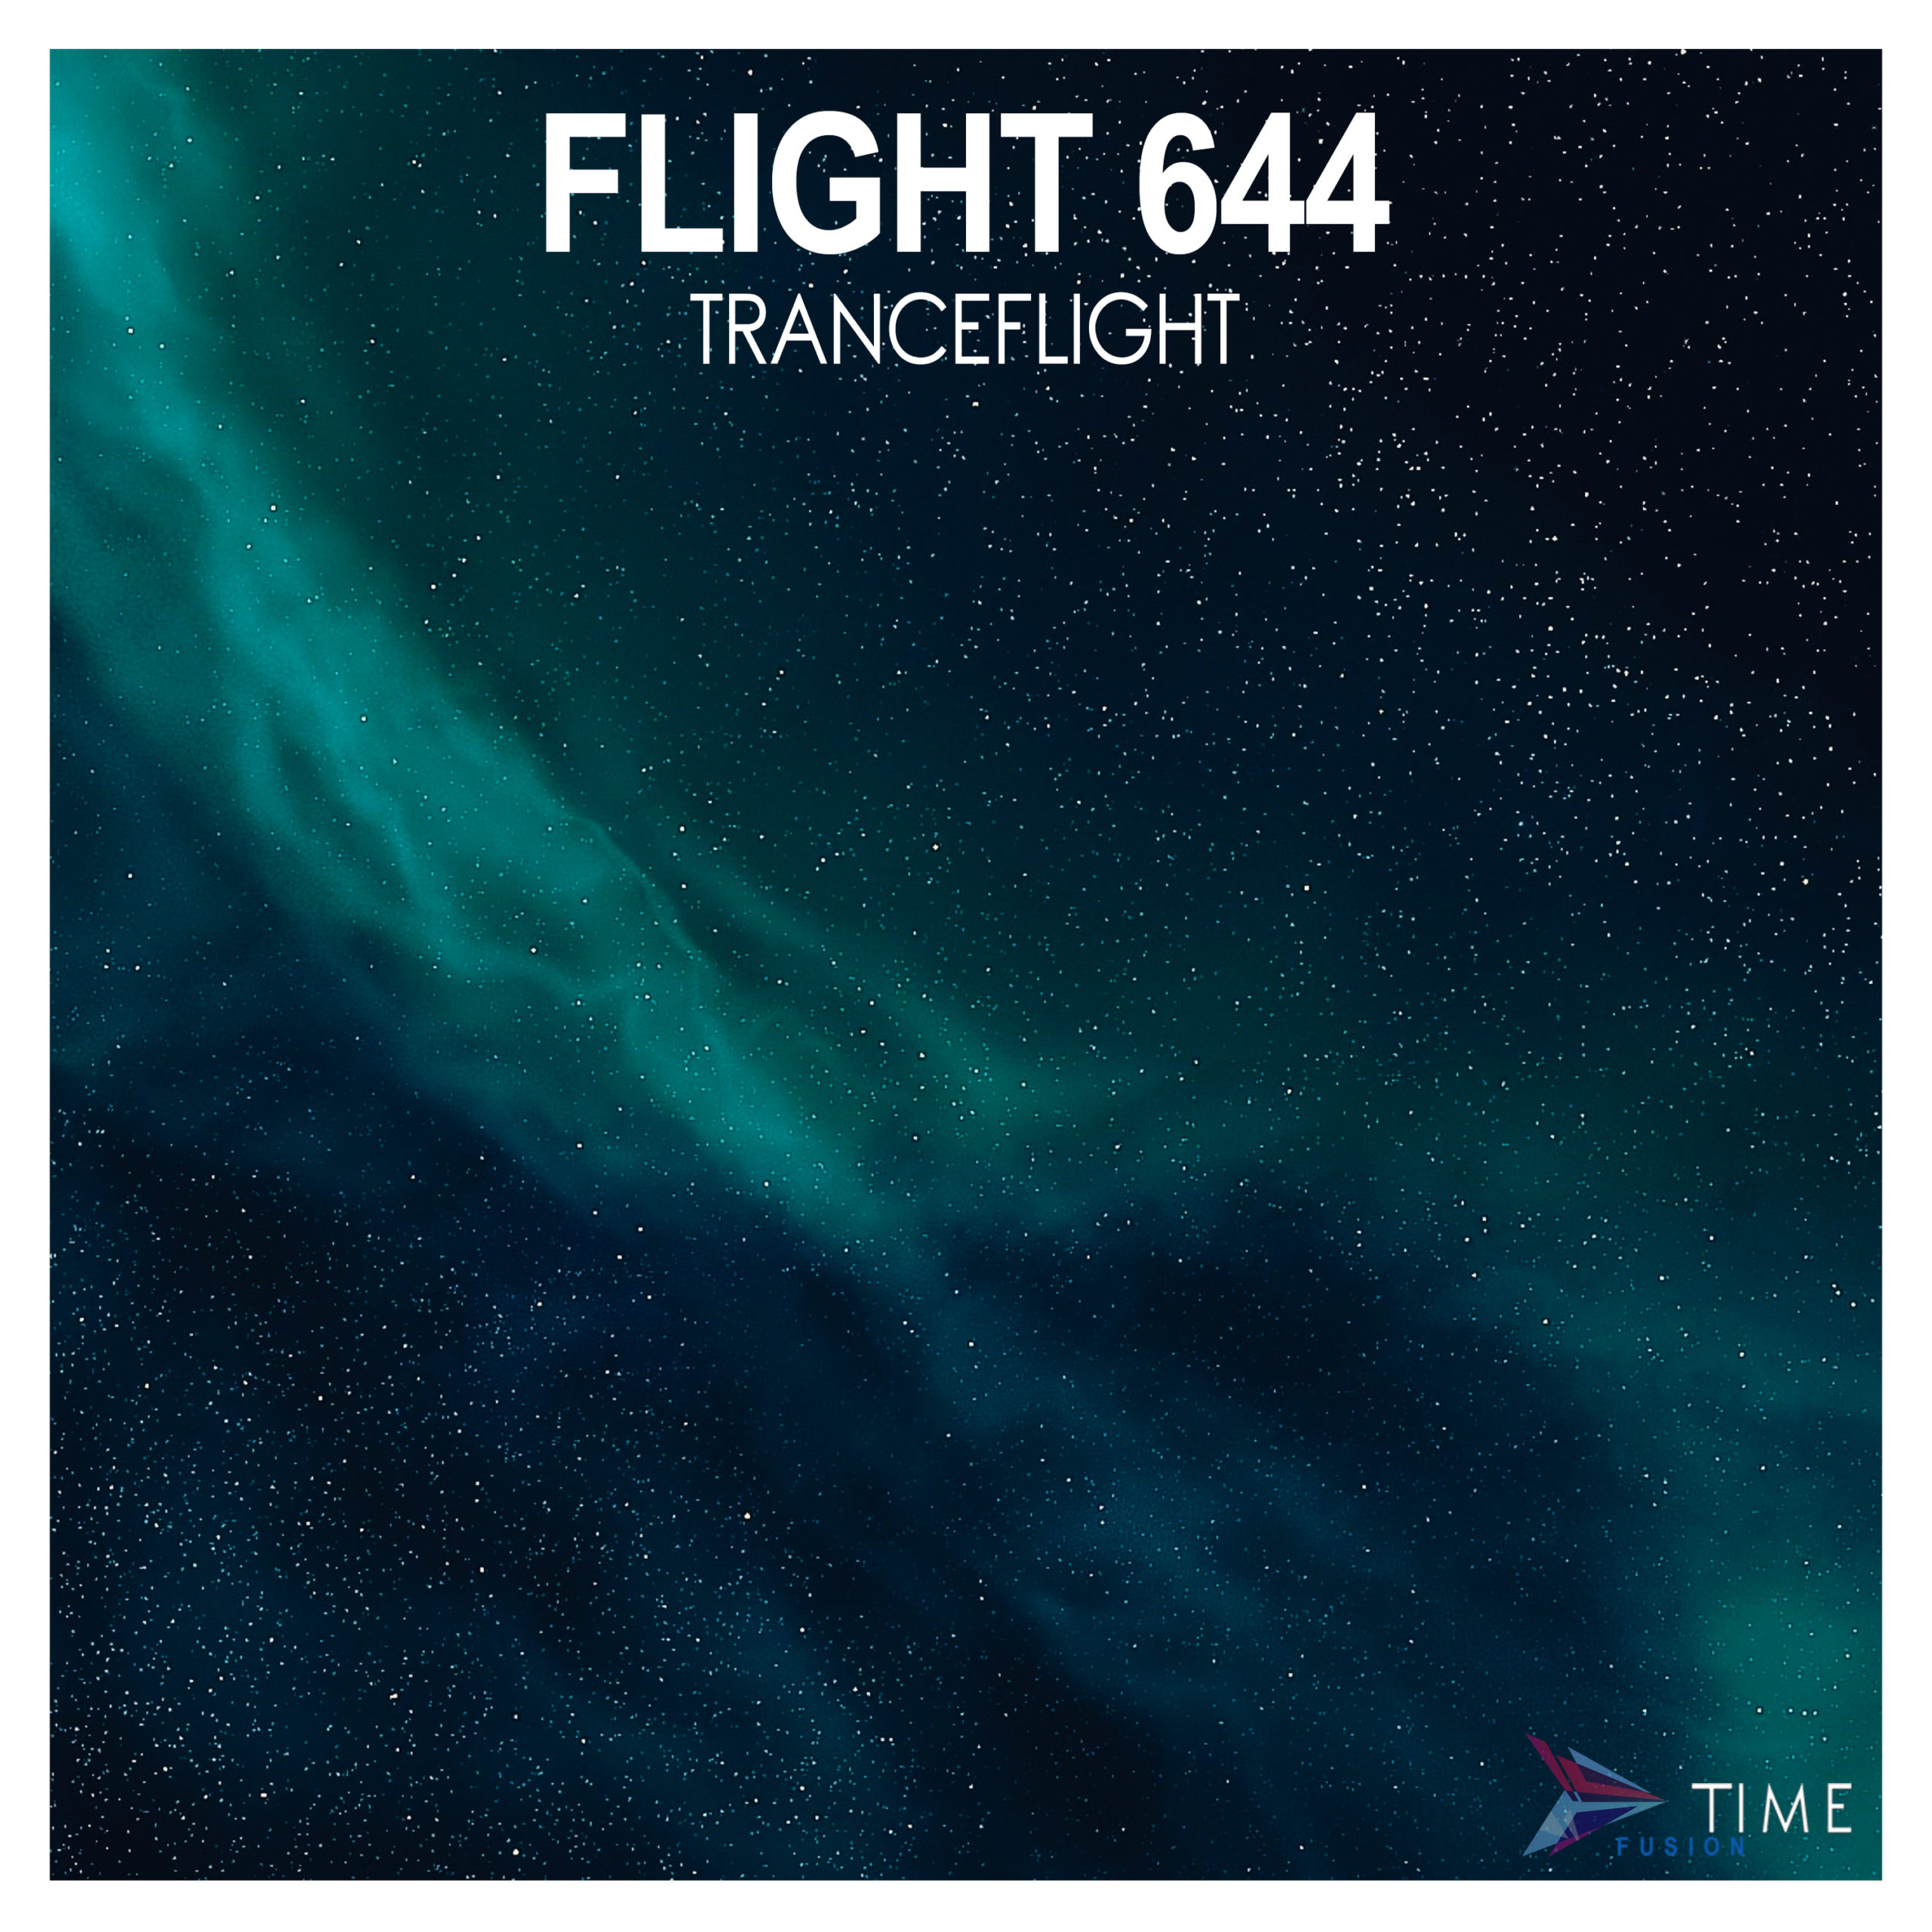 https://www.ultimate-house-records.com/wp-content/uploads/2021/05/Flight_644_Cover_C-scaled.jpg